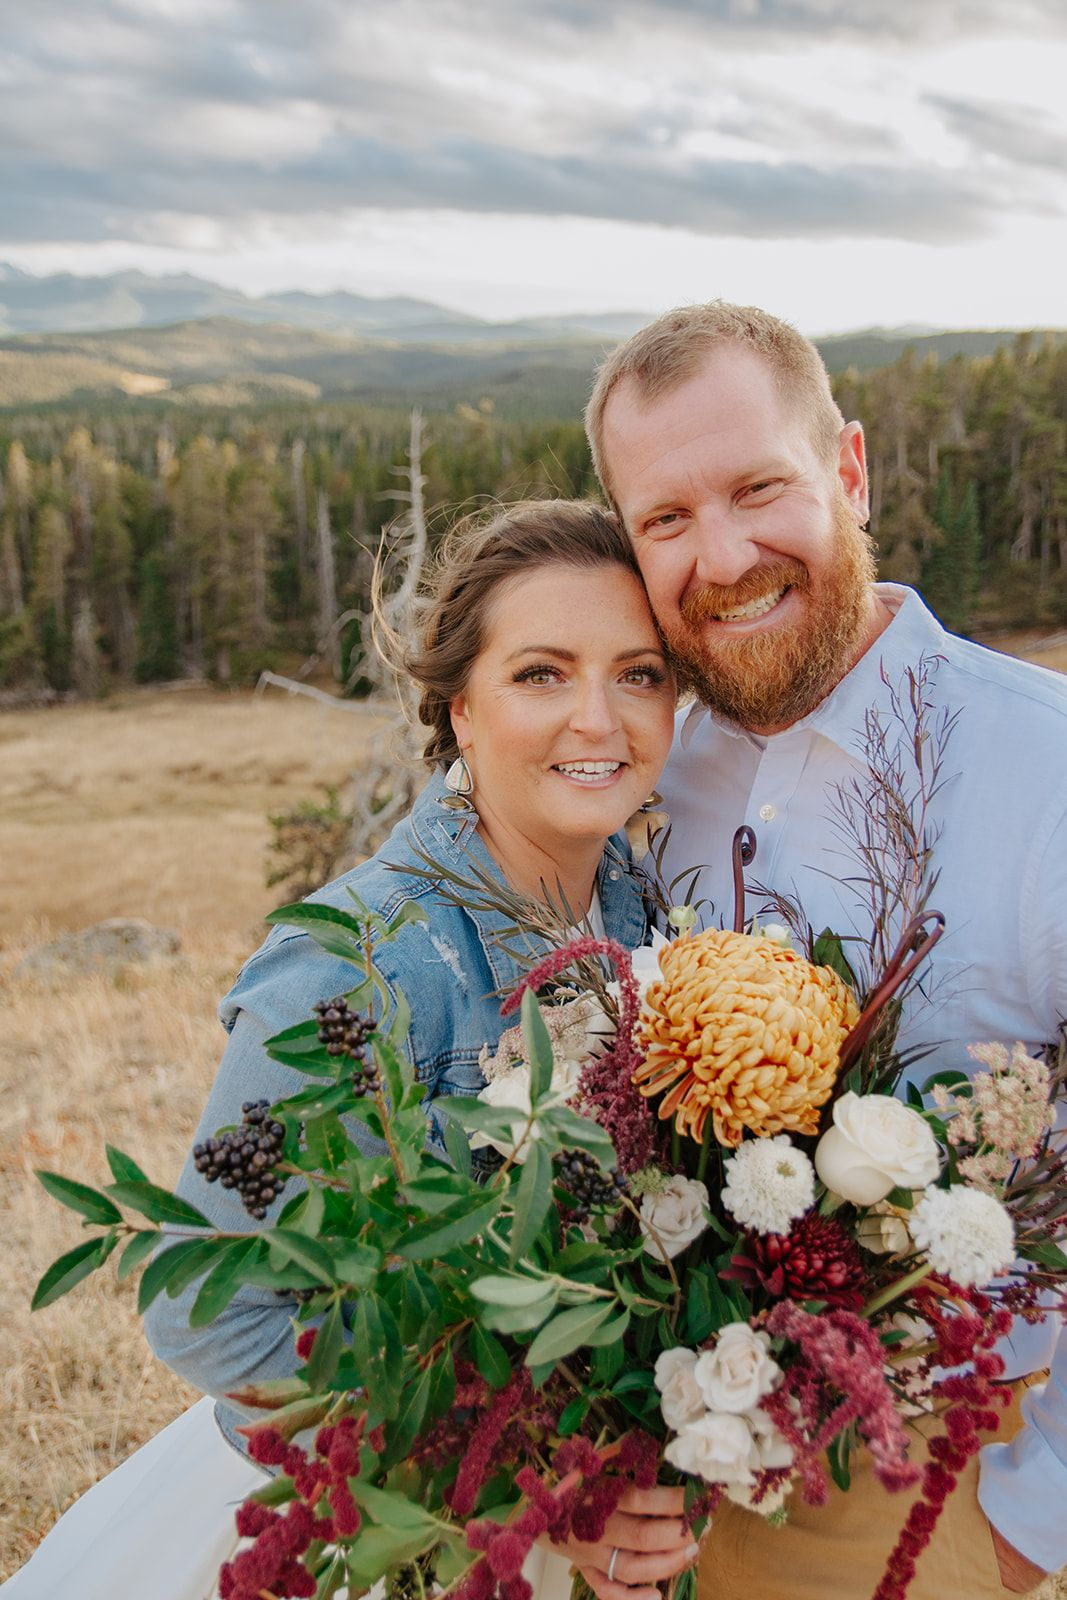 wyoming-elopement-packages-photography-2_websize-large